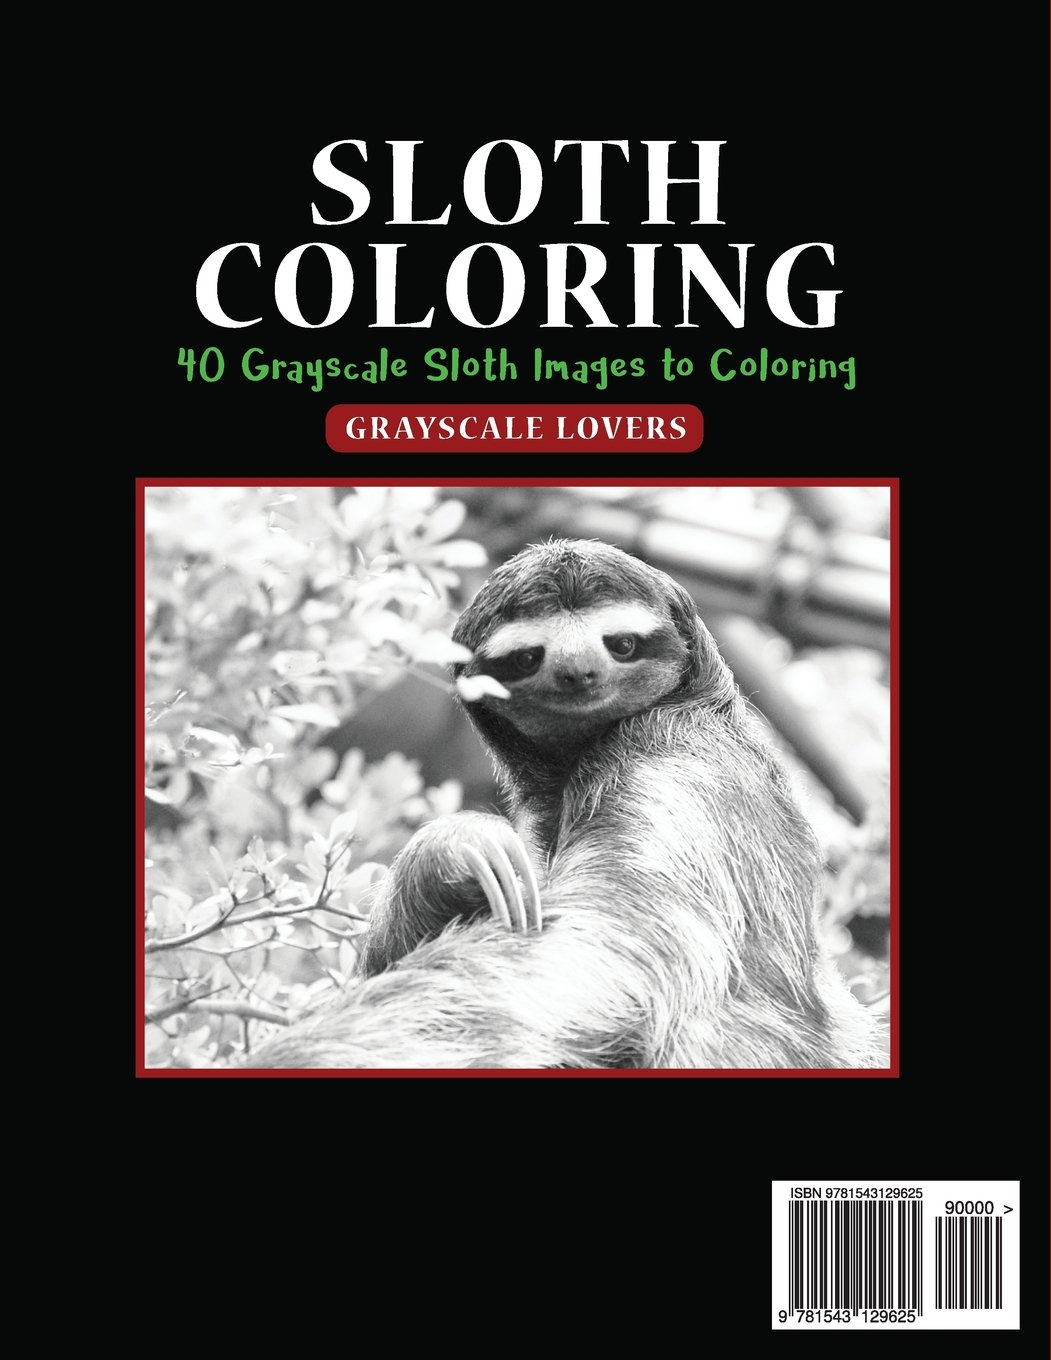 amazon com sloth coloring fantastic super cute 40 grayscale slot